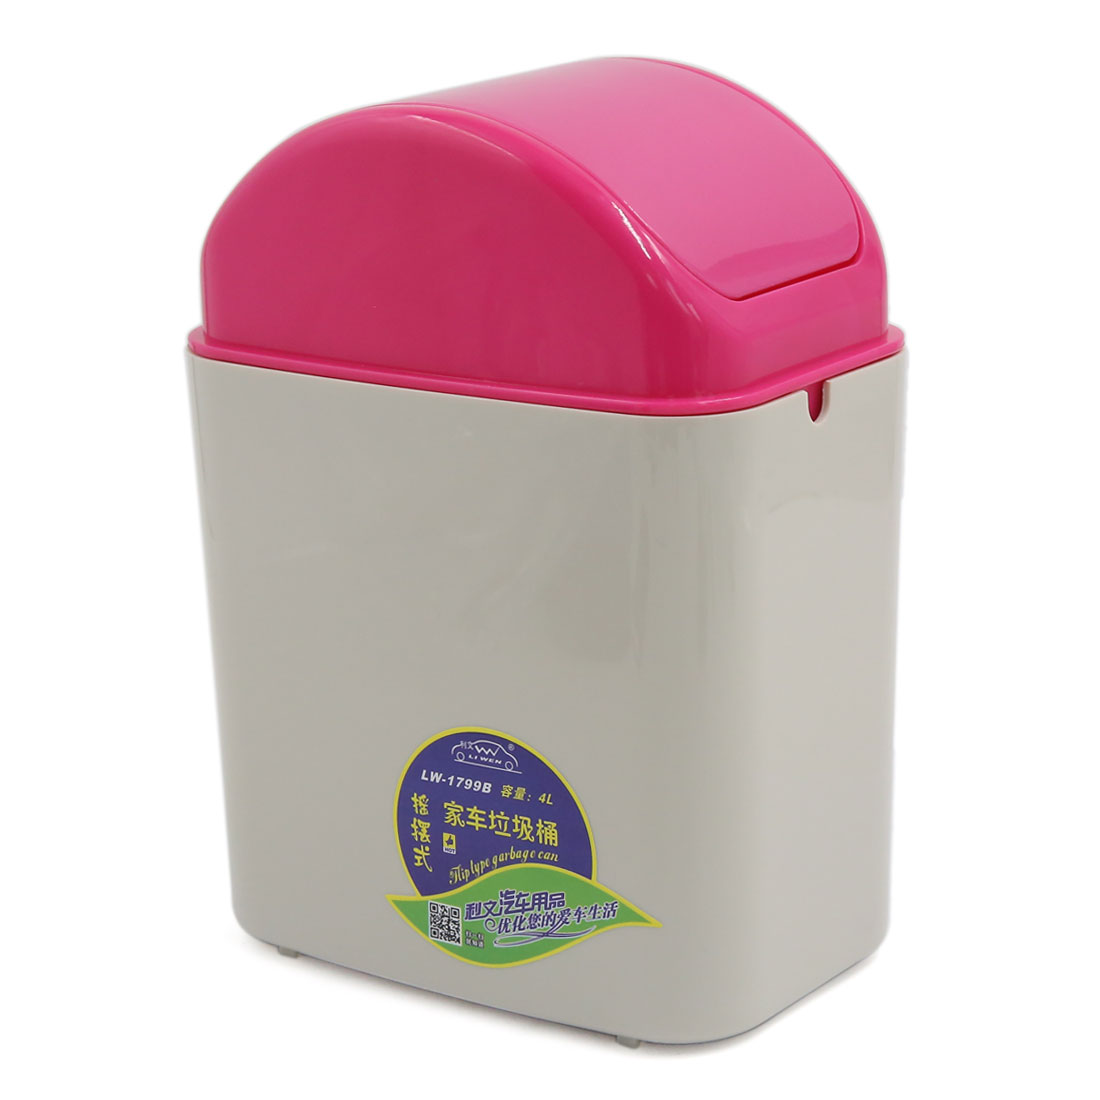 Universal Car Trash Can Garbage Bin Sundries Storage Container Case Beige Pink